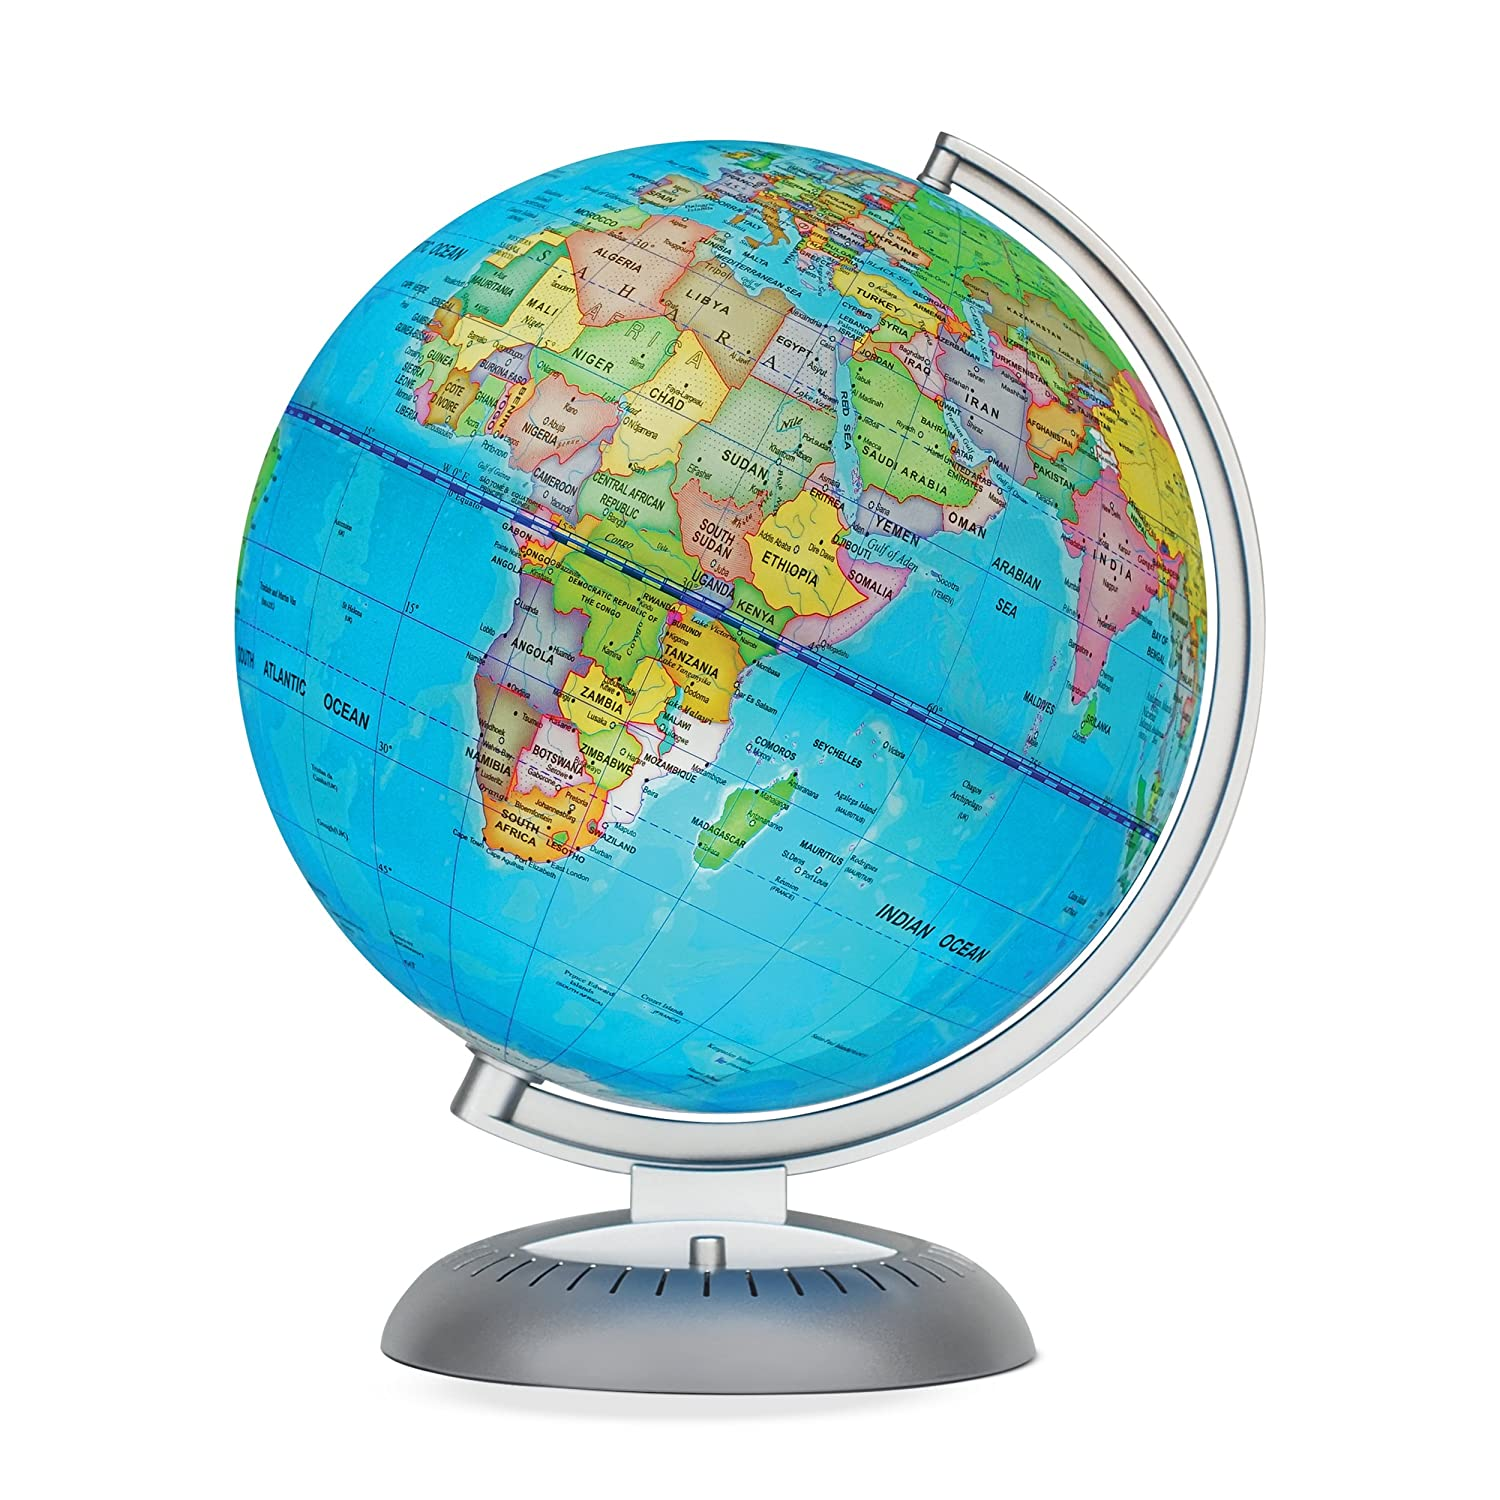 Amazon illuminated world globe for kids with standbuilt in amazon illuminated world globe for kids with standbuilt in led for illuminated night view office products sciox Image collections